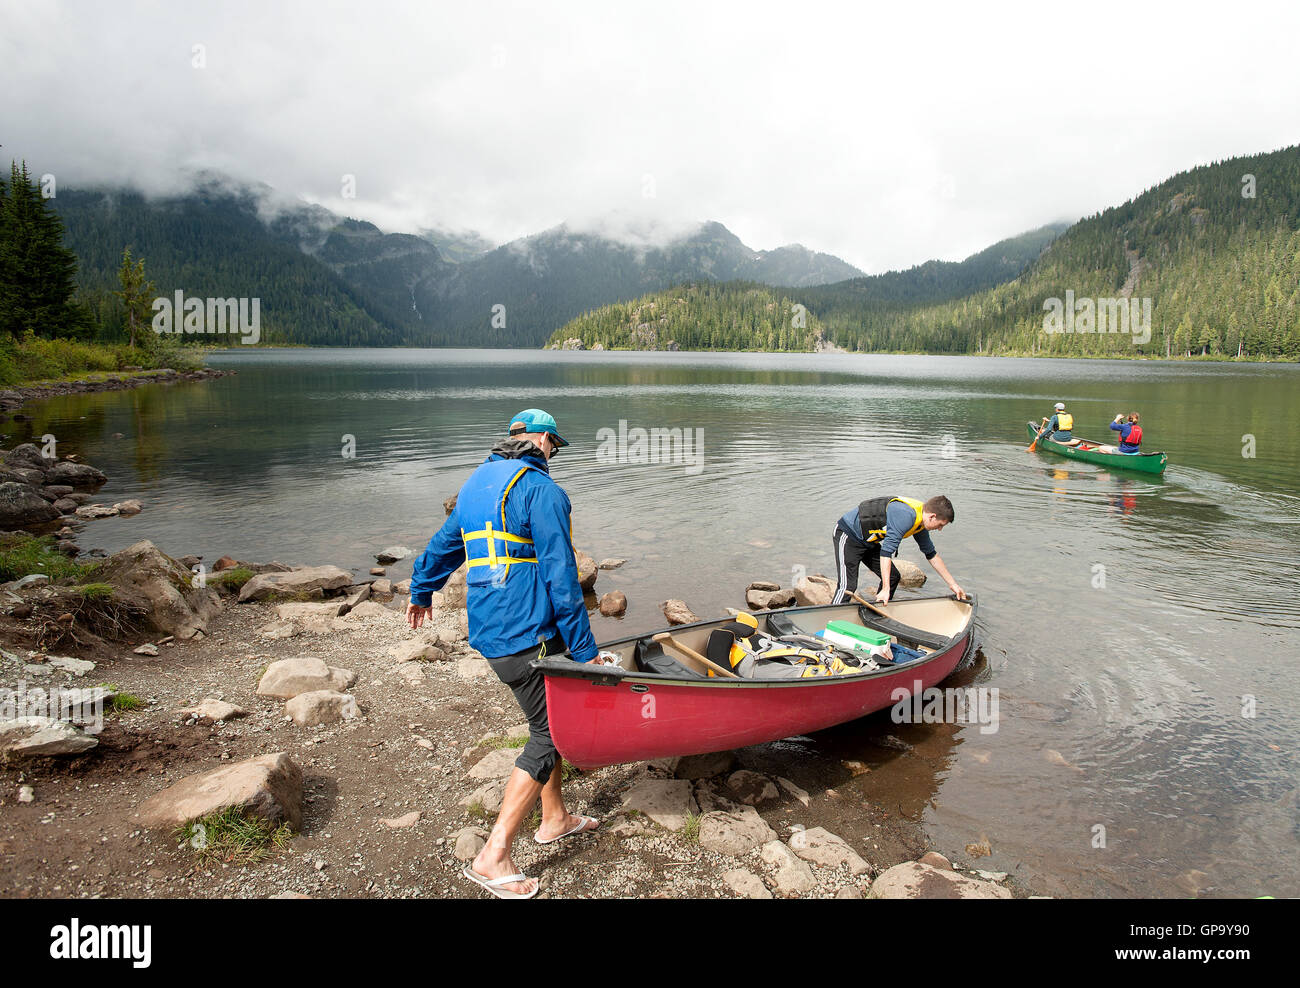 A group of canoe campers push off for a trip across Callaghan Lake Saturday afternoon.  Whistler BC, Canada - Stock Image